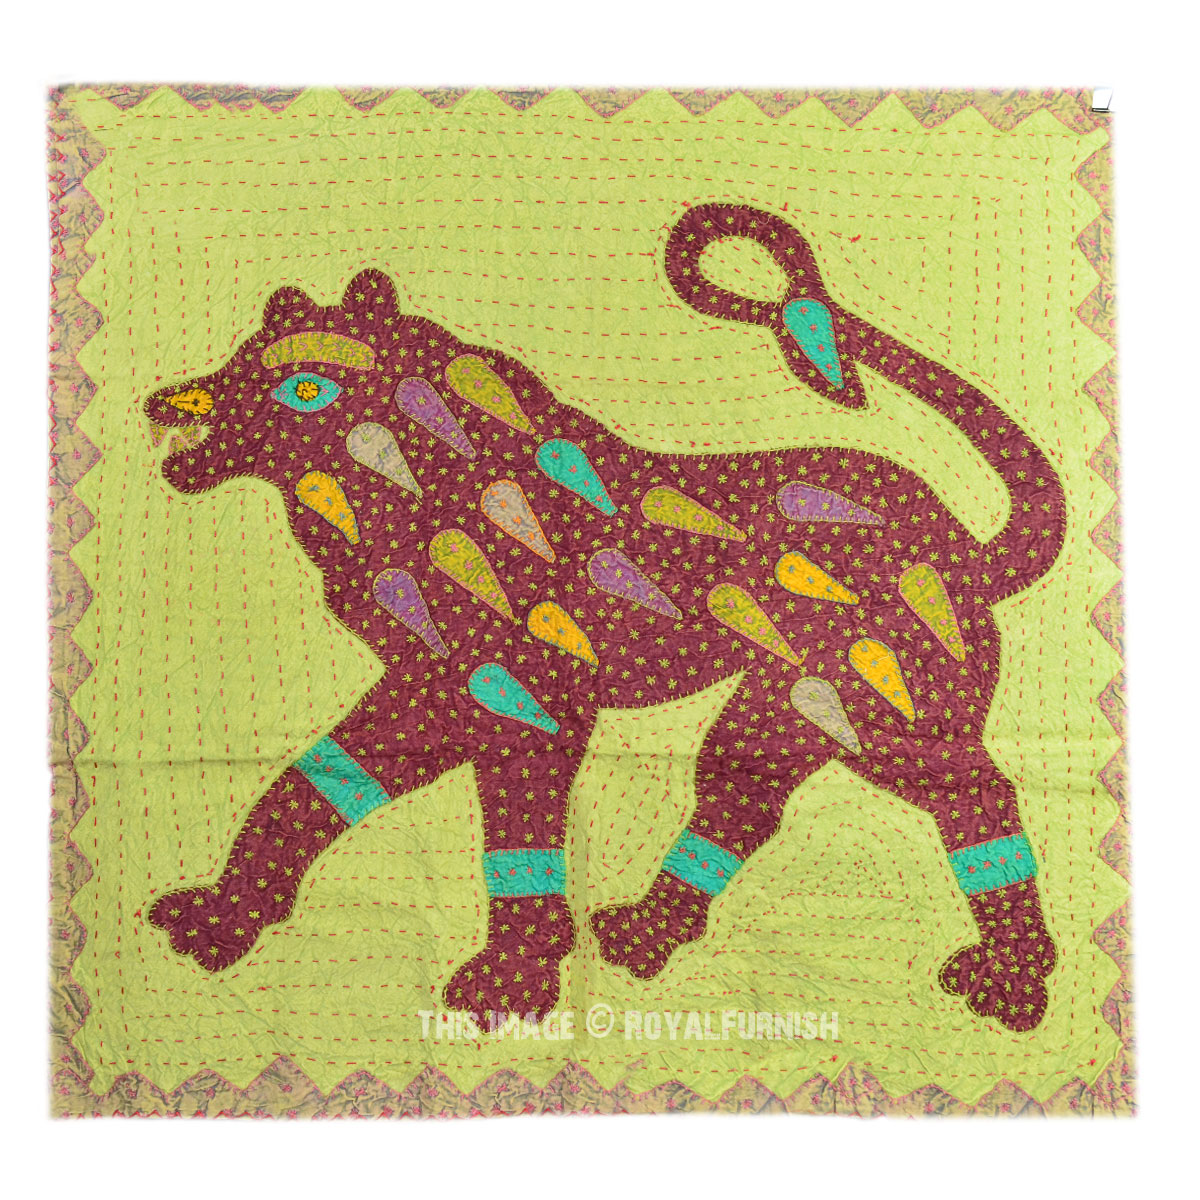 Big Size Tiger Kantha Patchwork Wall Hanging Tapestry Decor Art ...